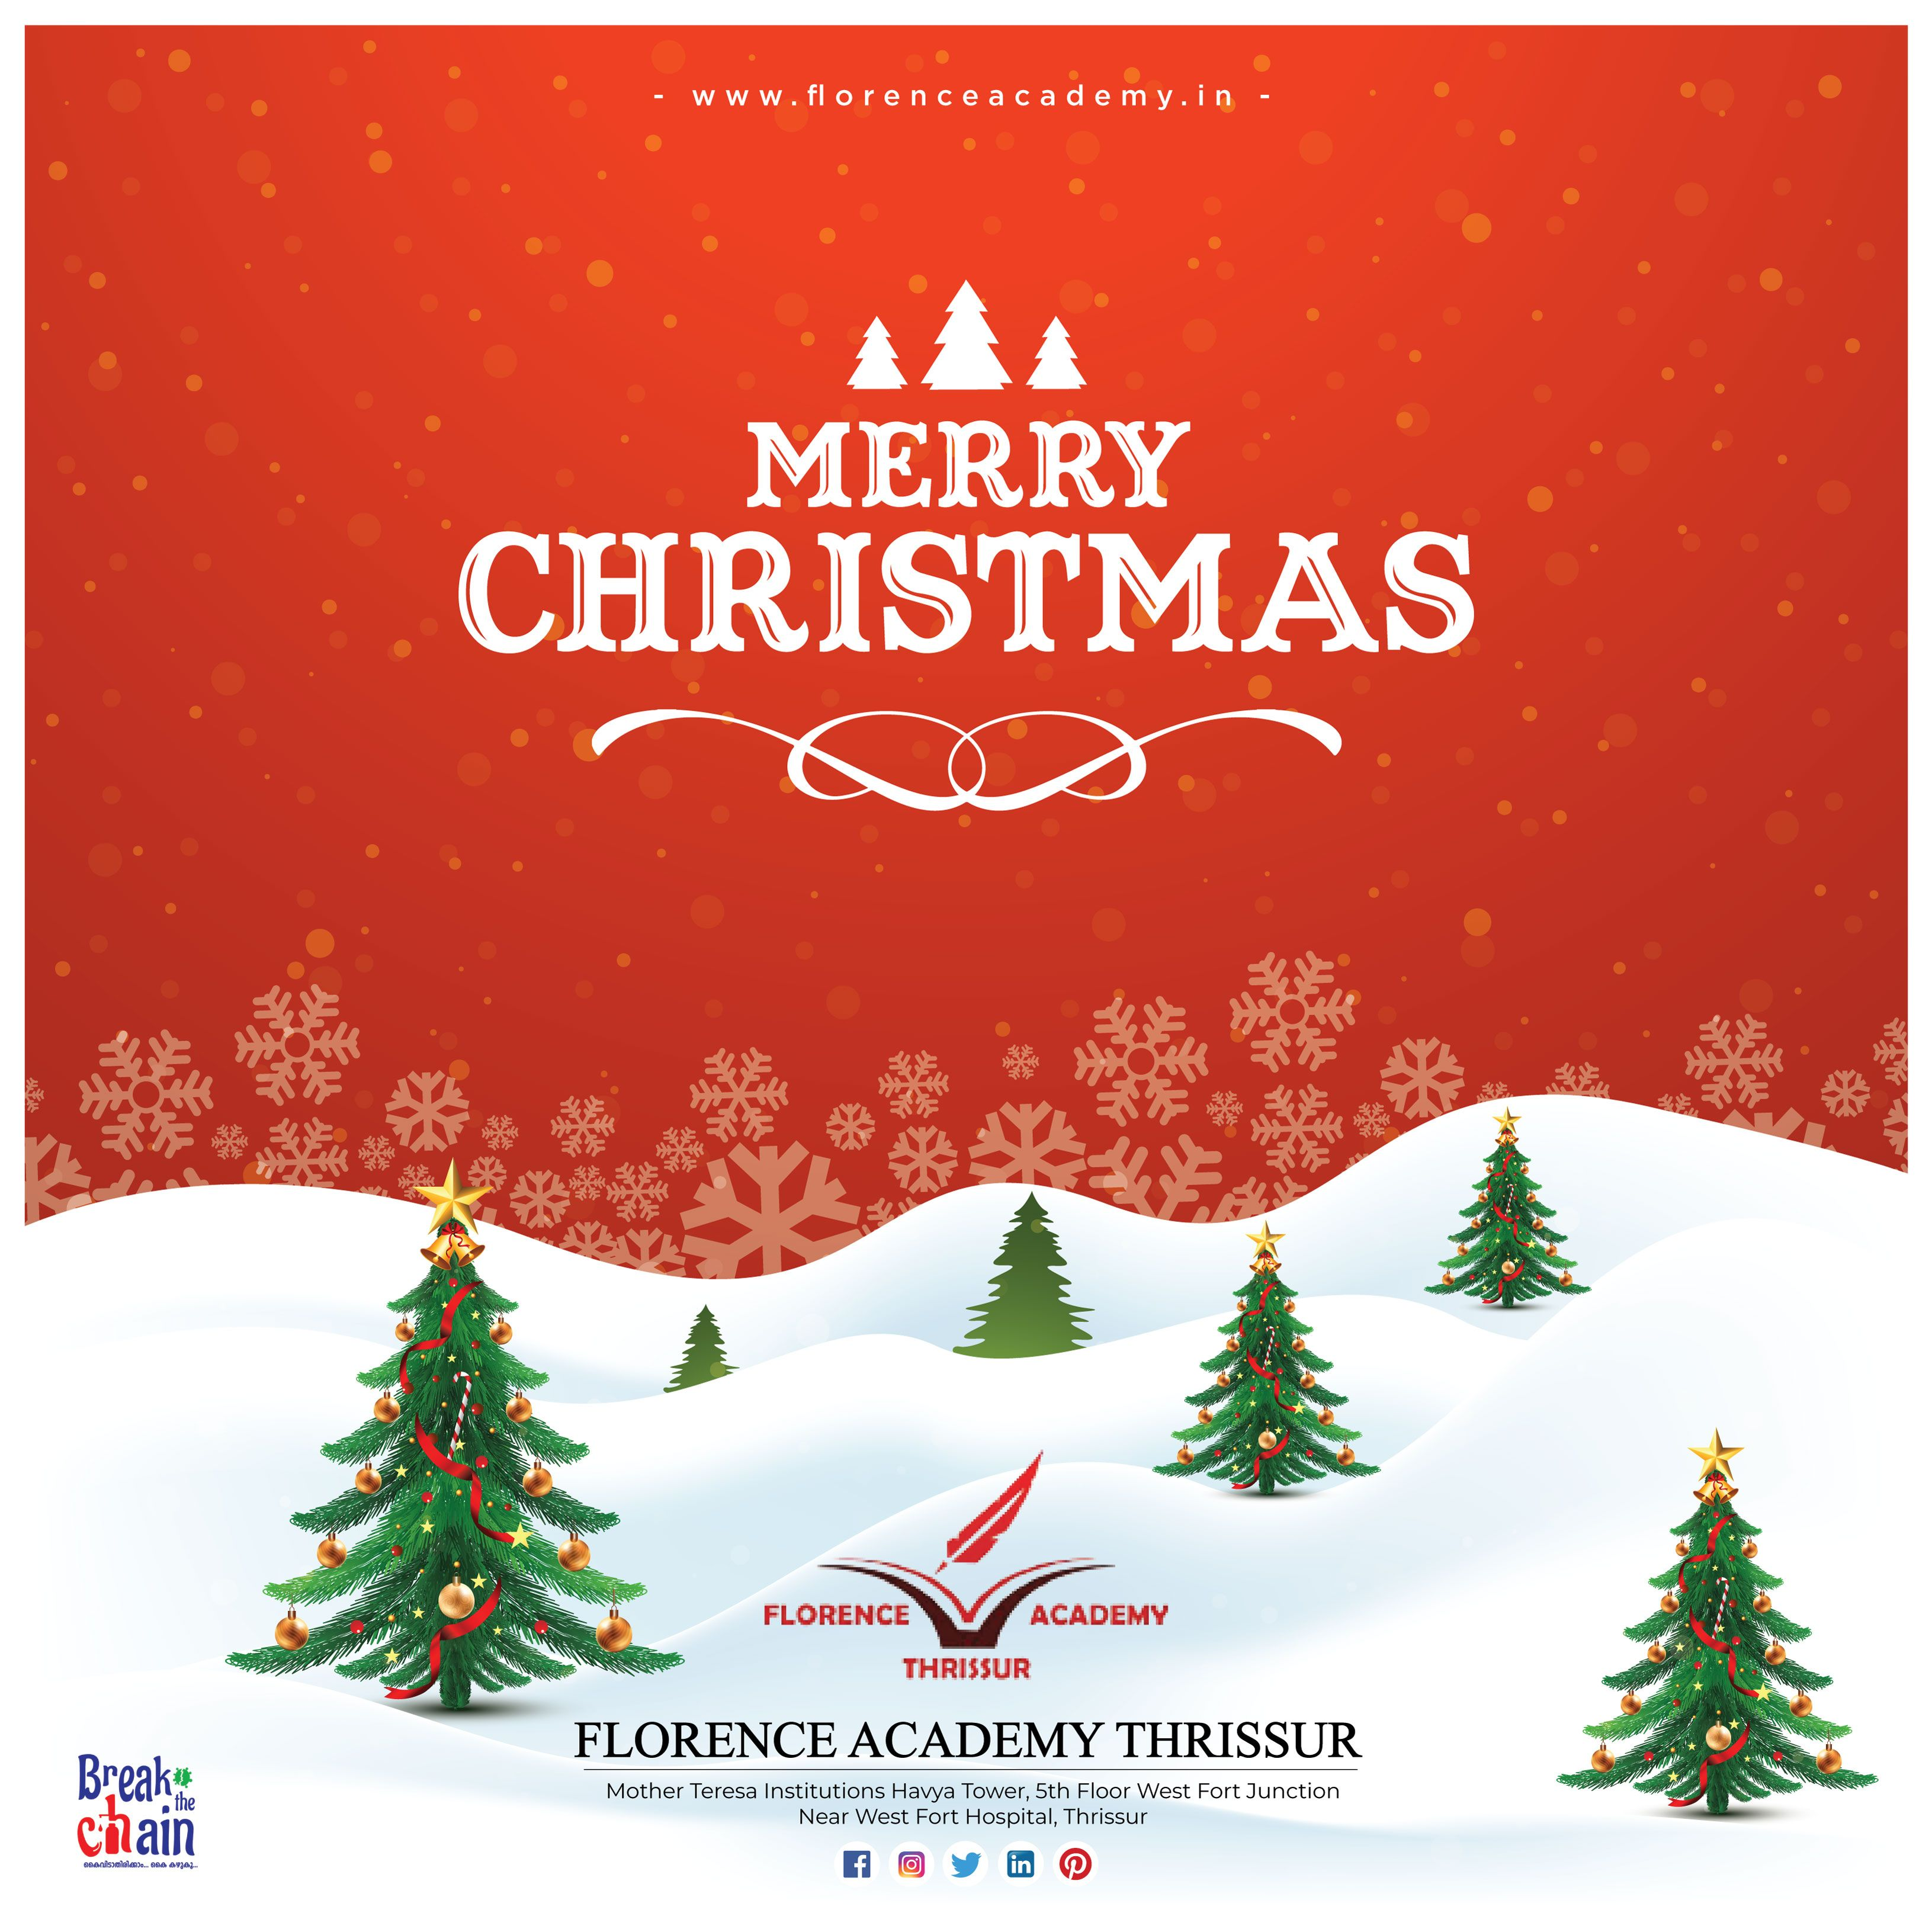 Academy Christmas Hours 2021 Enjoy This Christmas Season With The Ones You Love And Pursue Your Career Dreams In 2021 Florence Academy Wishes A Christmas Seasons Christmas Ornaments Merry